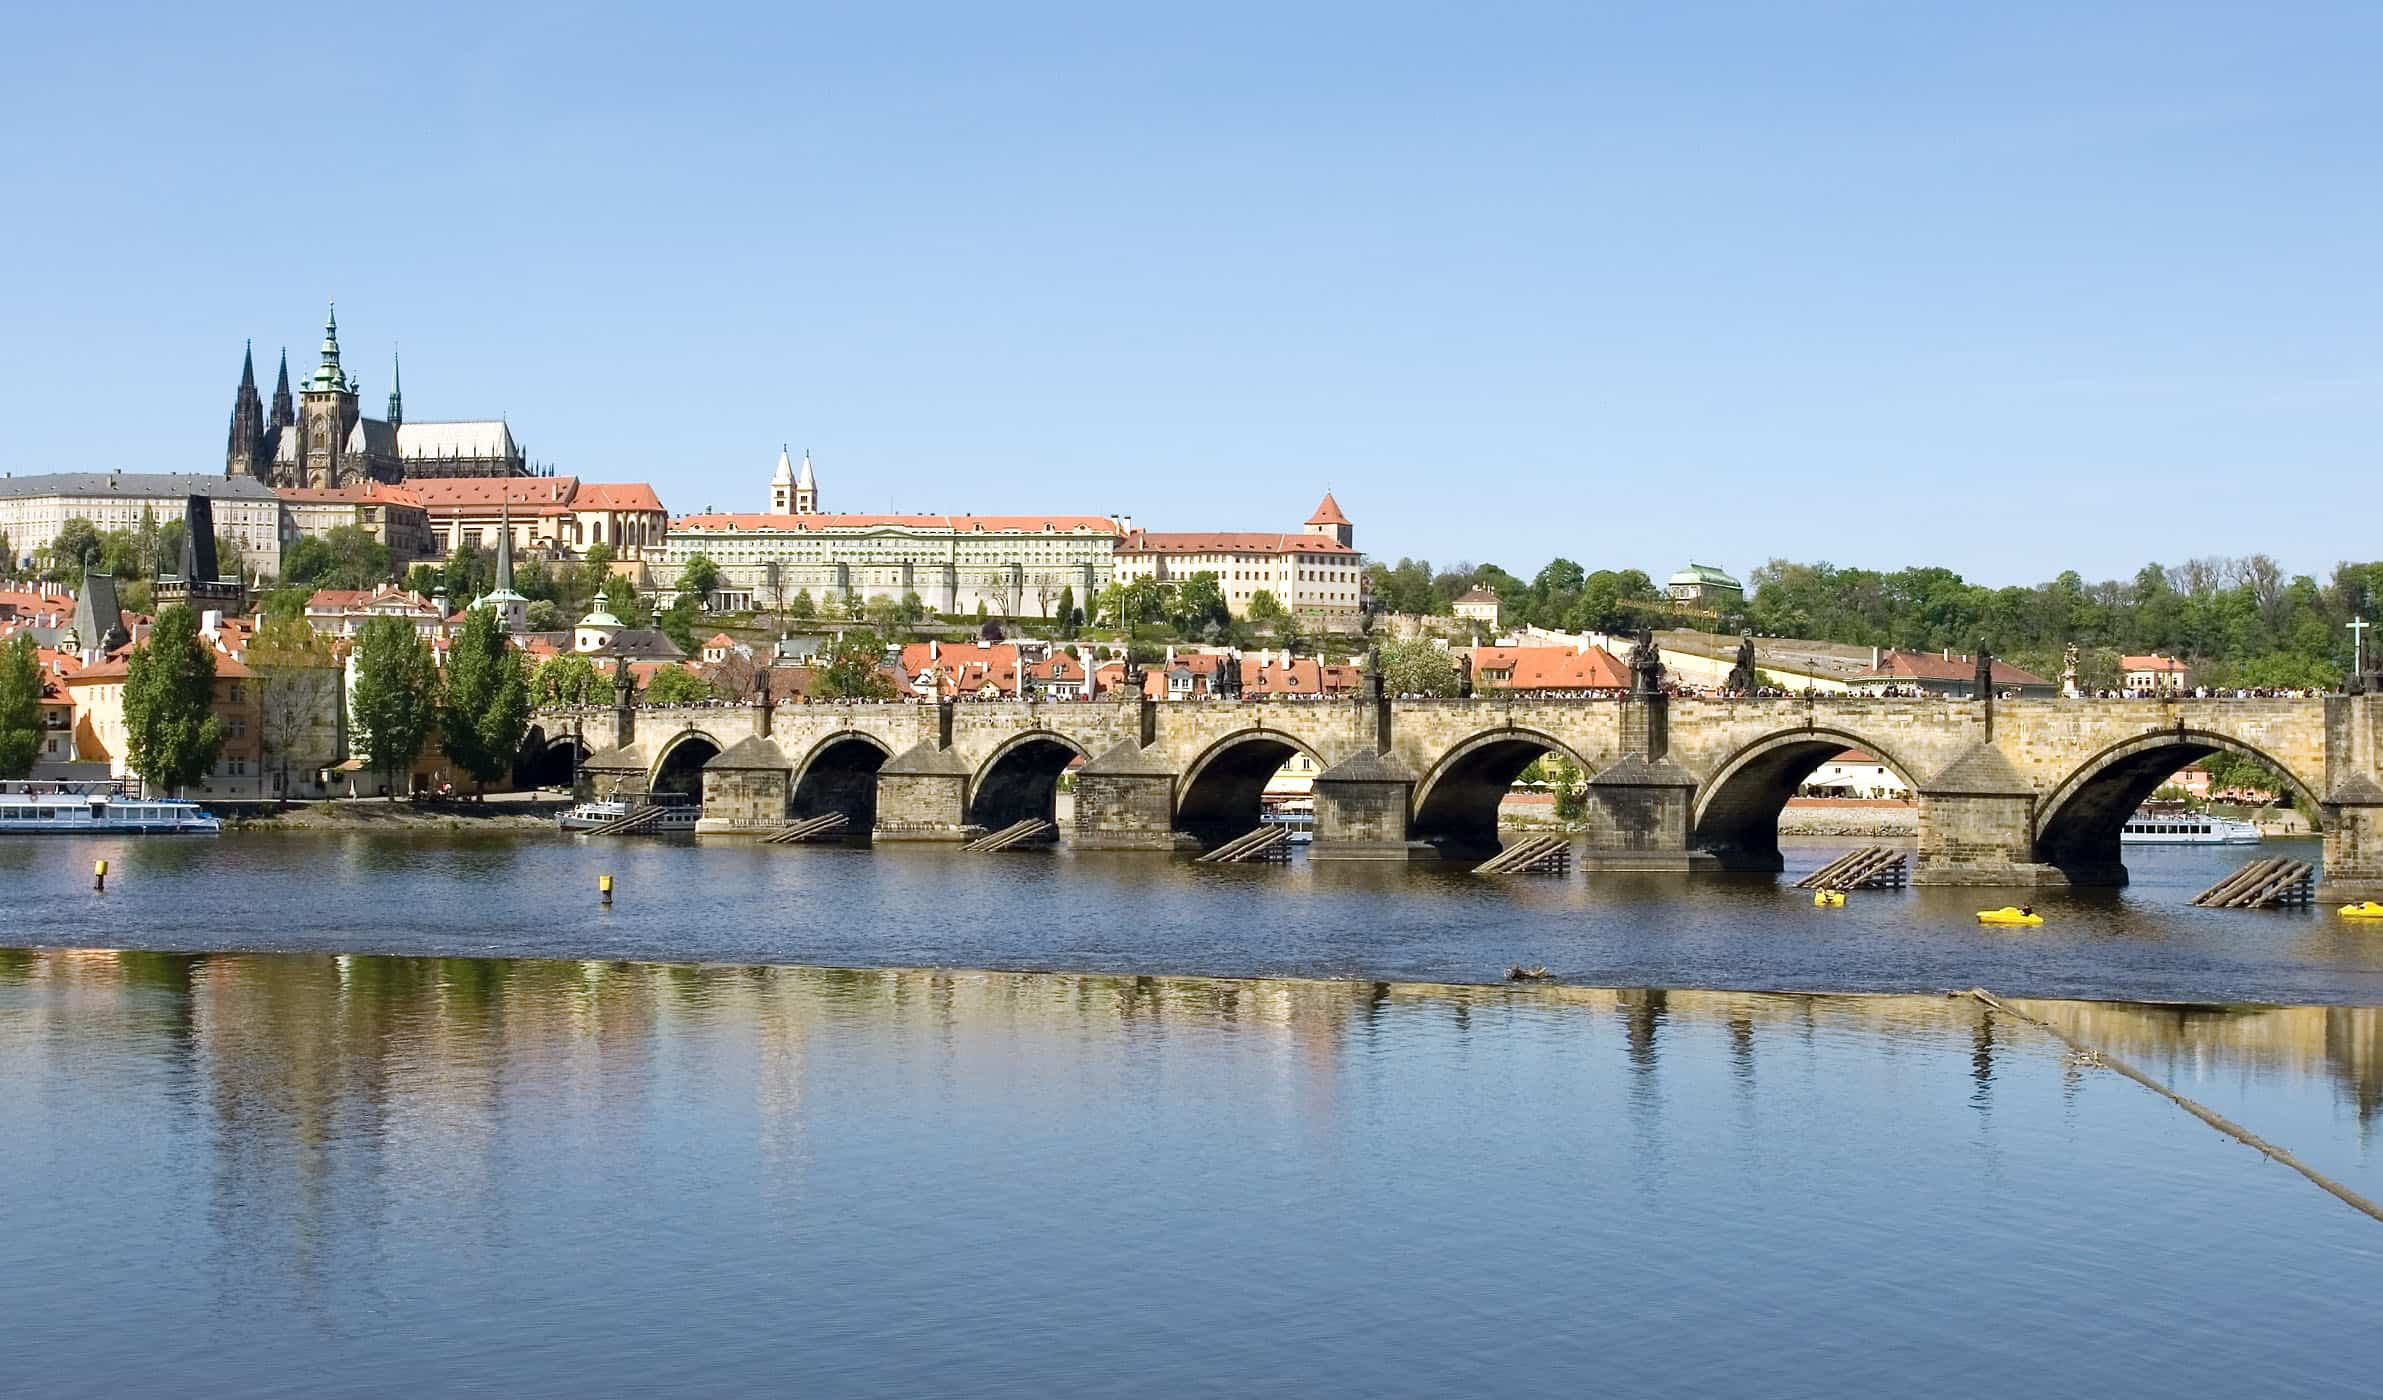 Panoramic view of the St. Charles Bridge (Karluv Most)